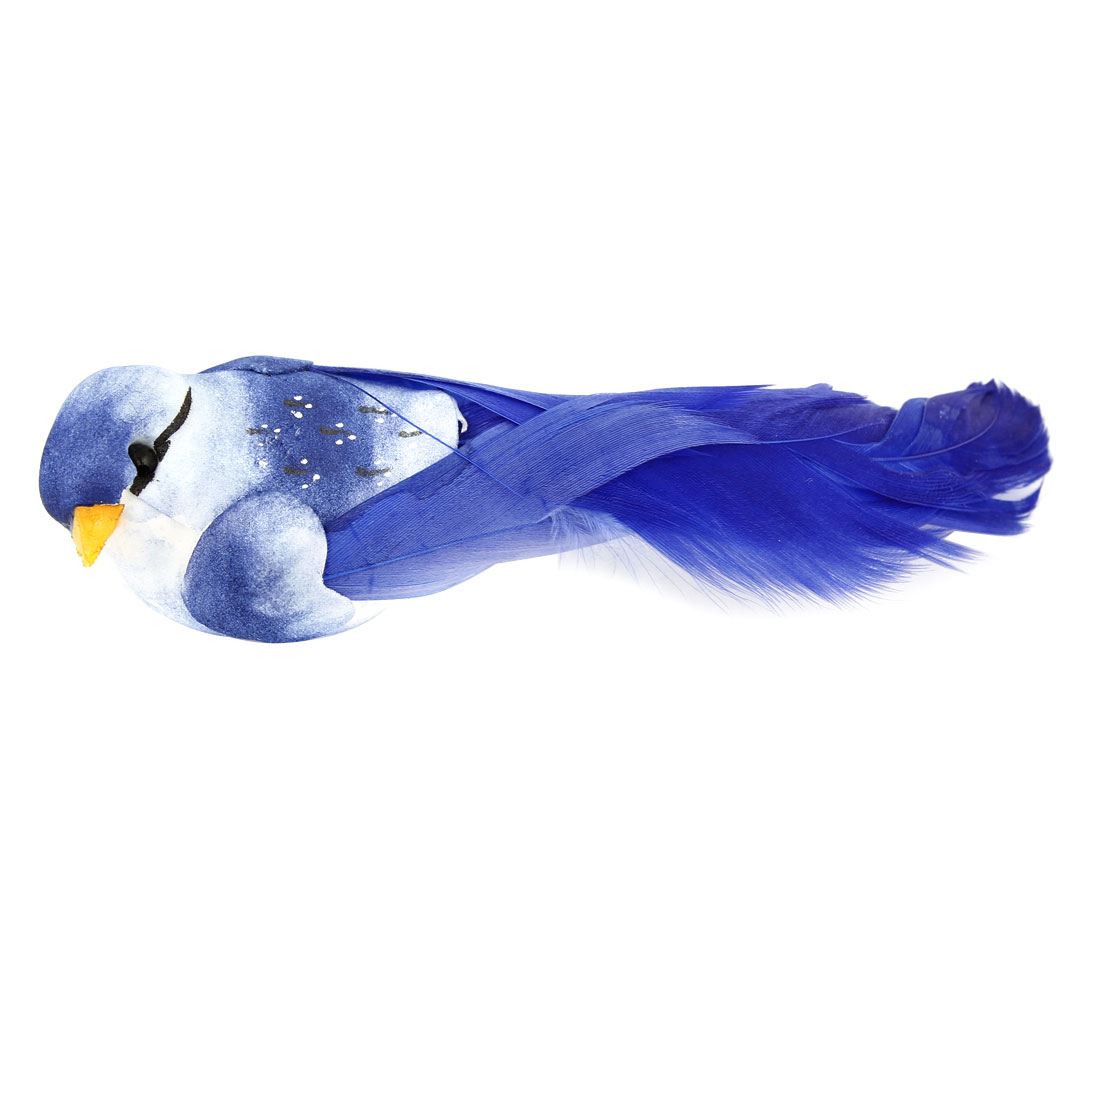 Blue Faux Feather Foam Magnetic Body Simulation Bird Christmas Ornament